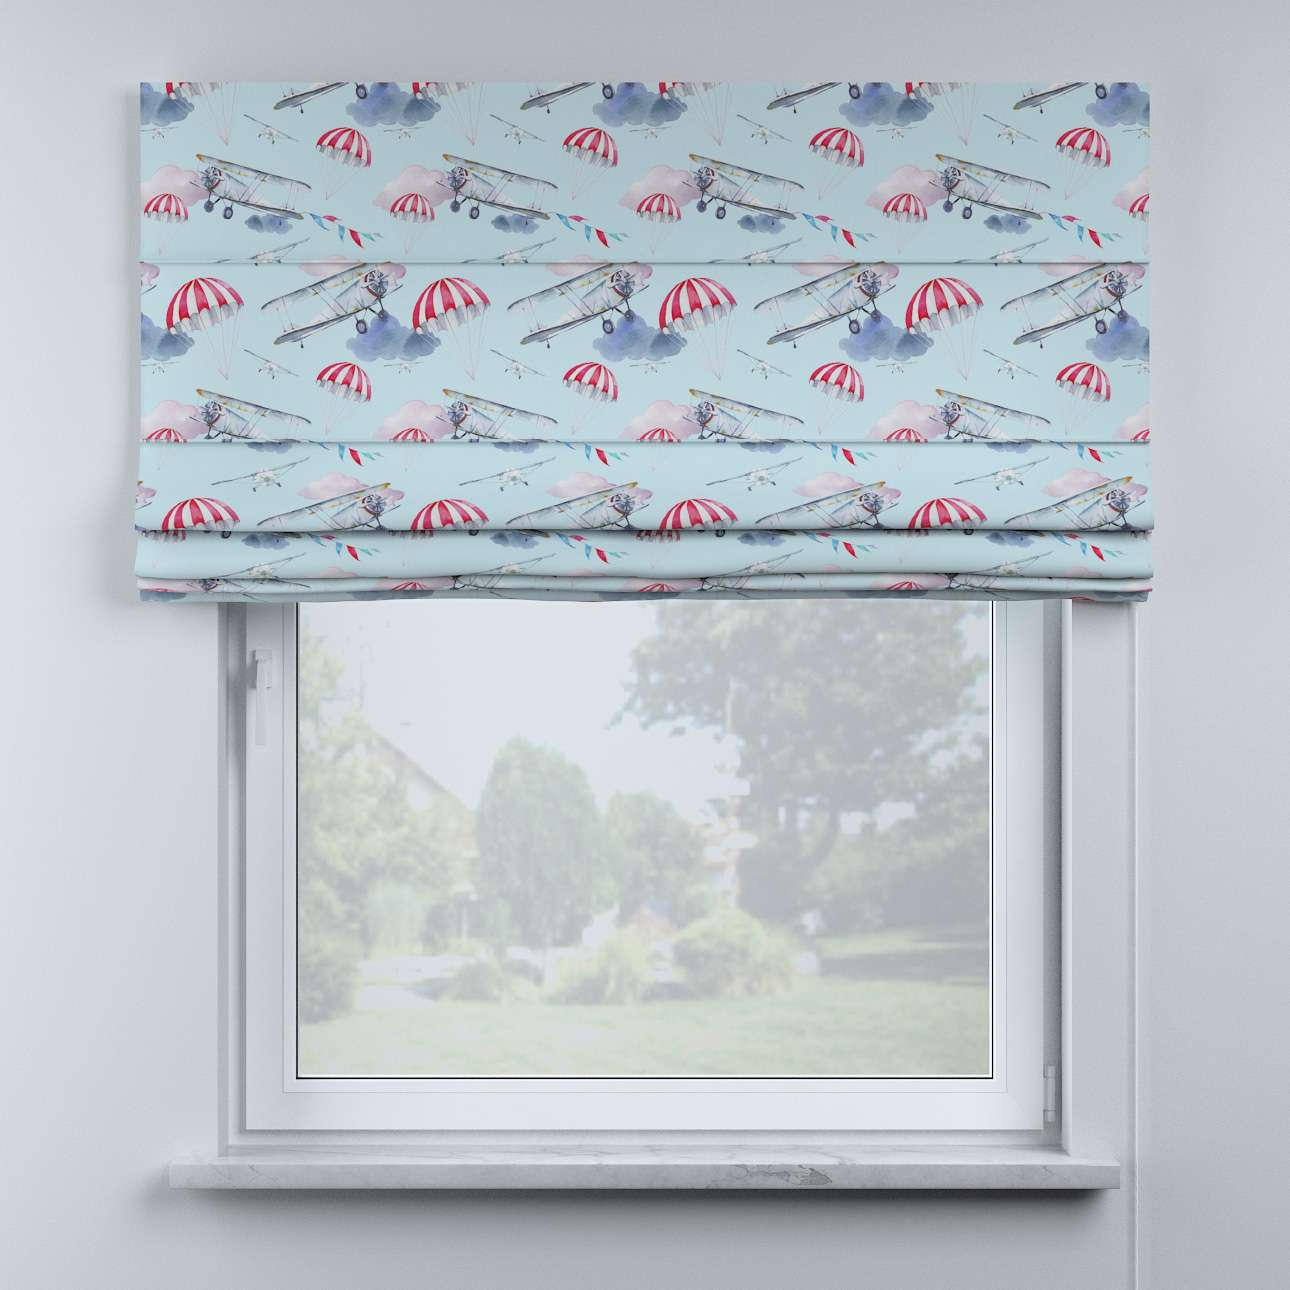 Billie roman blind in collection Magic Collection, fabric: 500-10